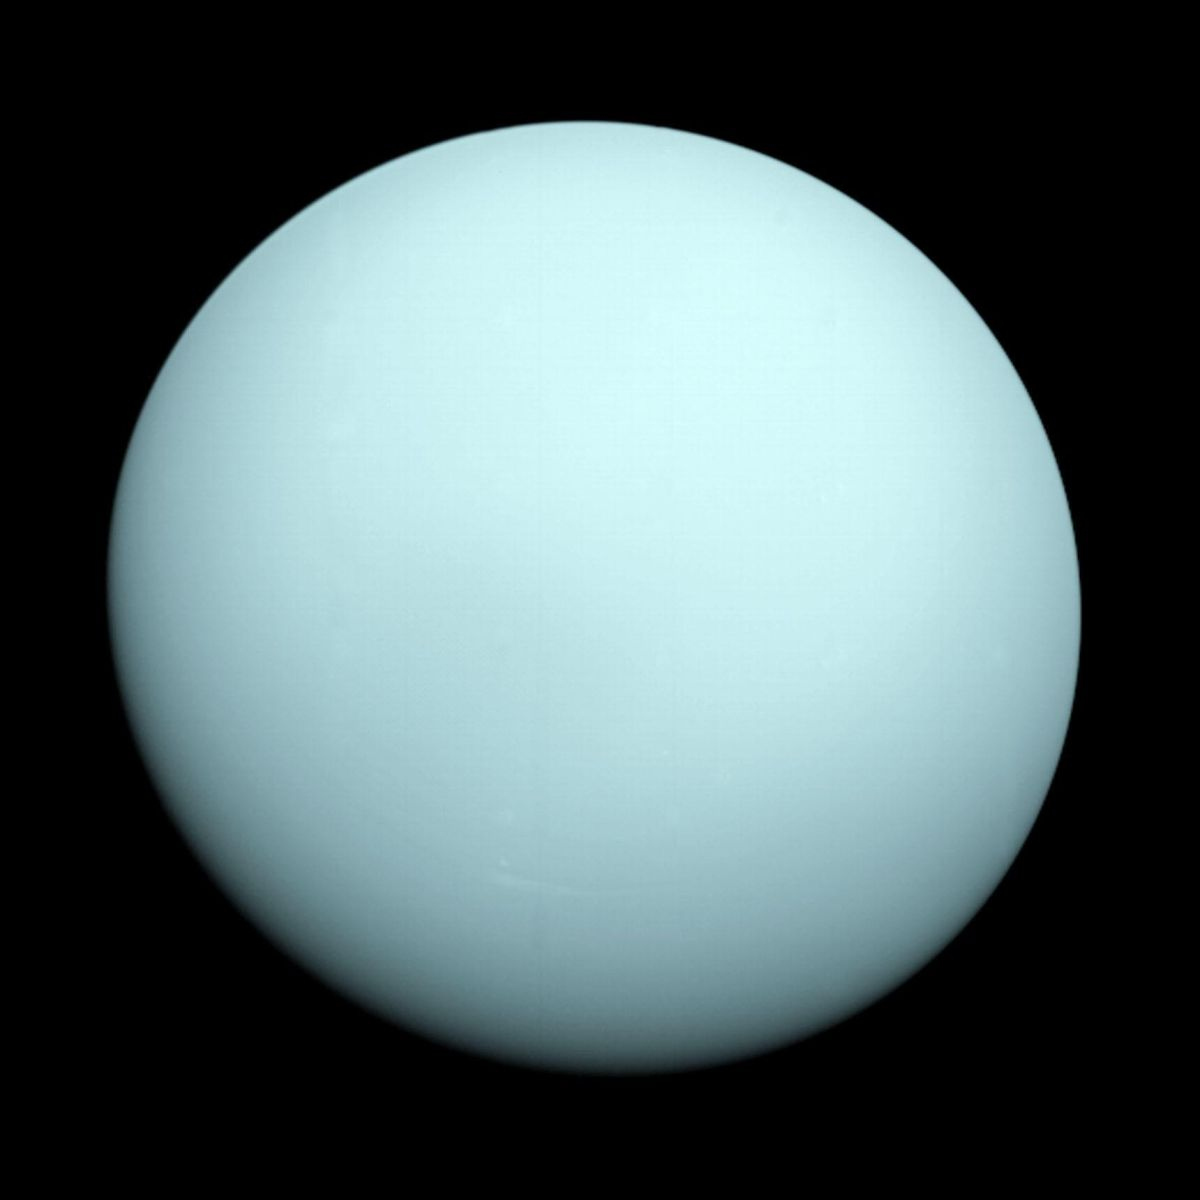 Scientists Want to Probe Atmospheres of Uranus and Neptune